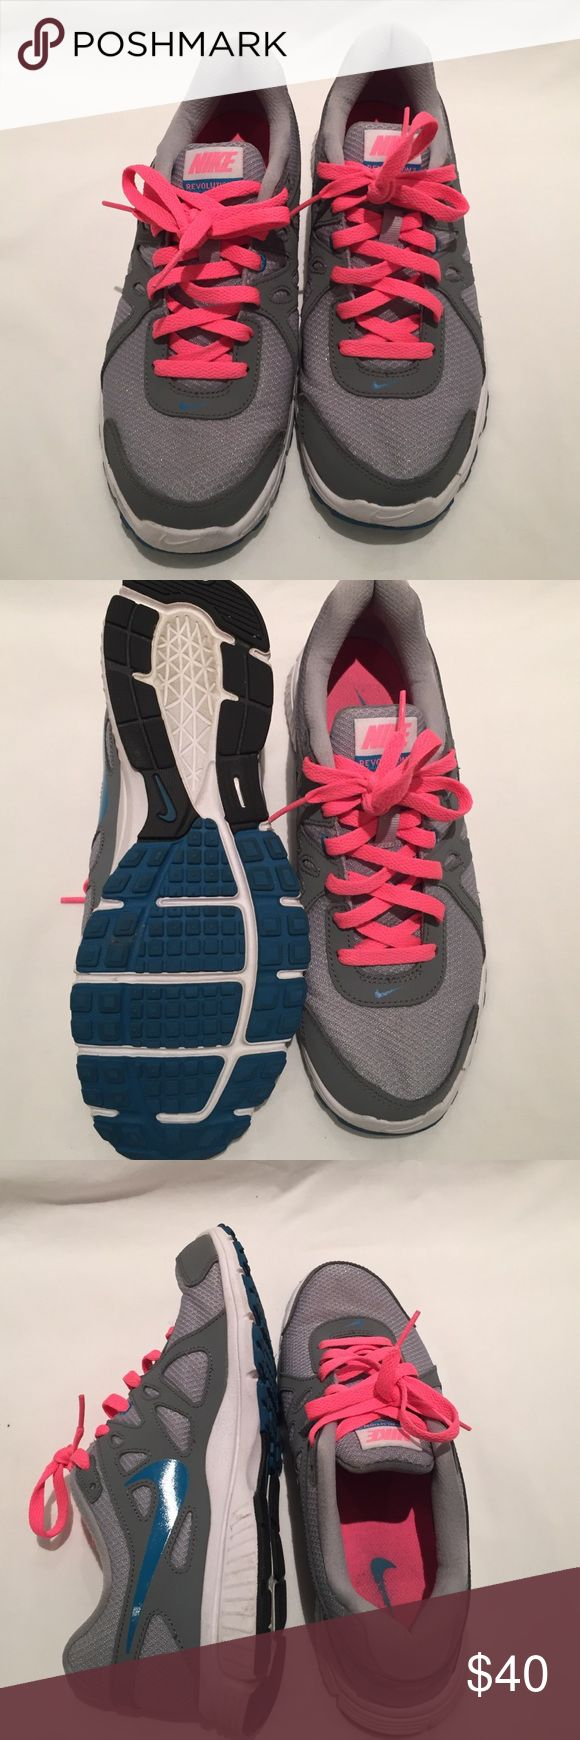 Nike Revolution 2. Little wear. These have only been worn twice. Pink and gray. Nike Shoes Sneakers